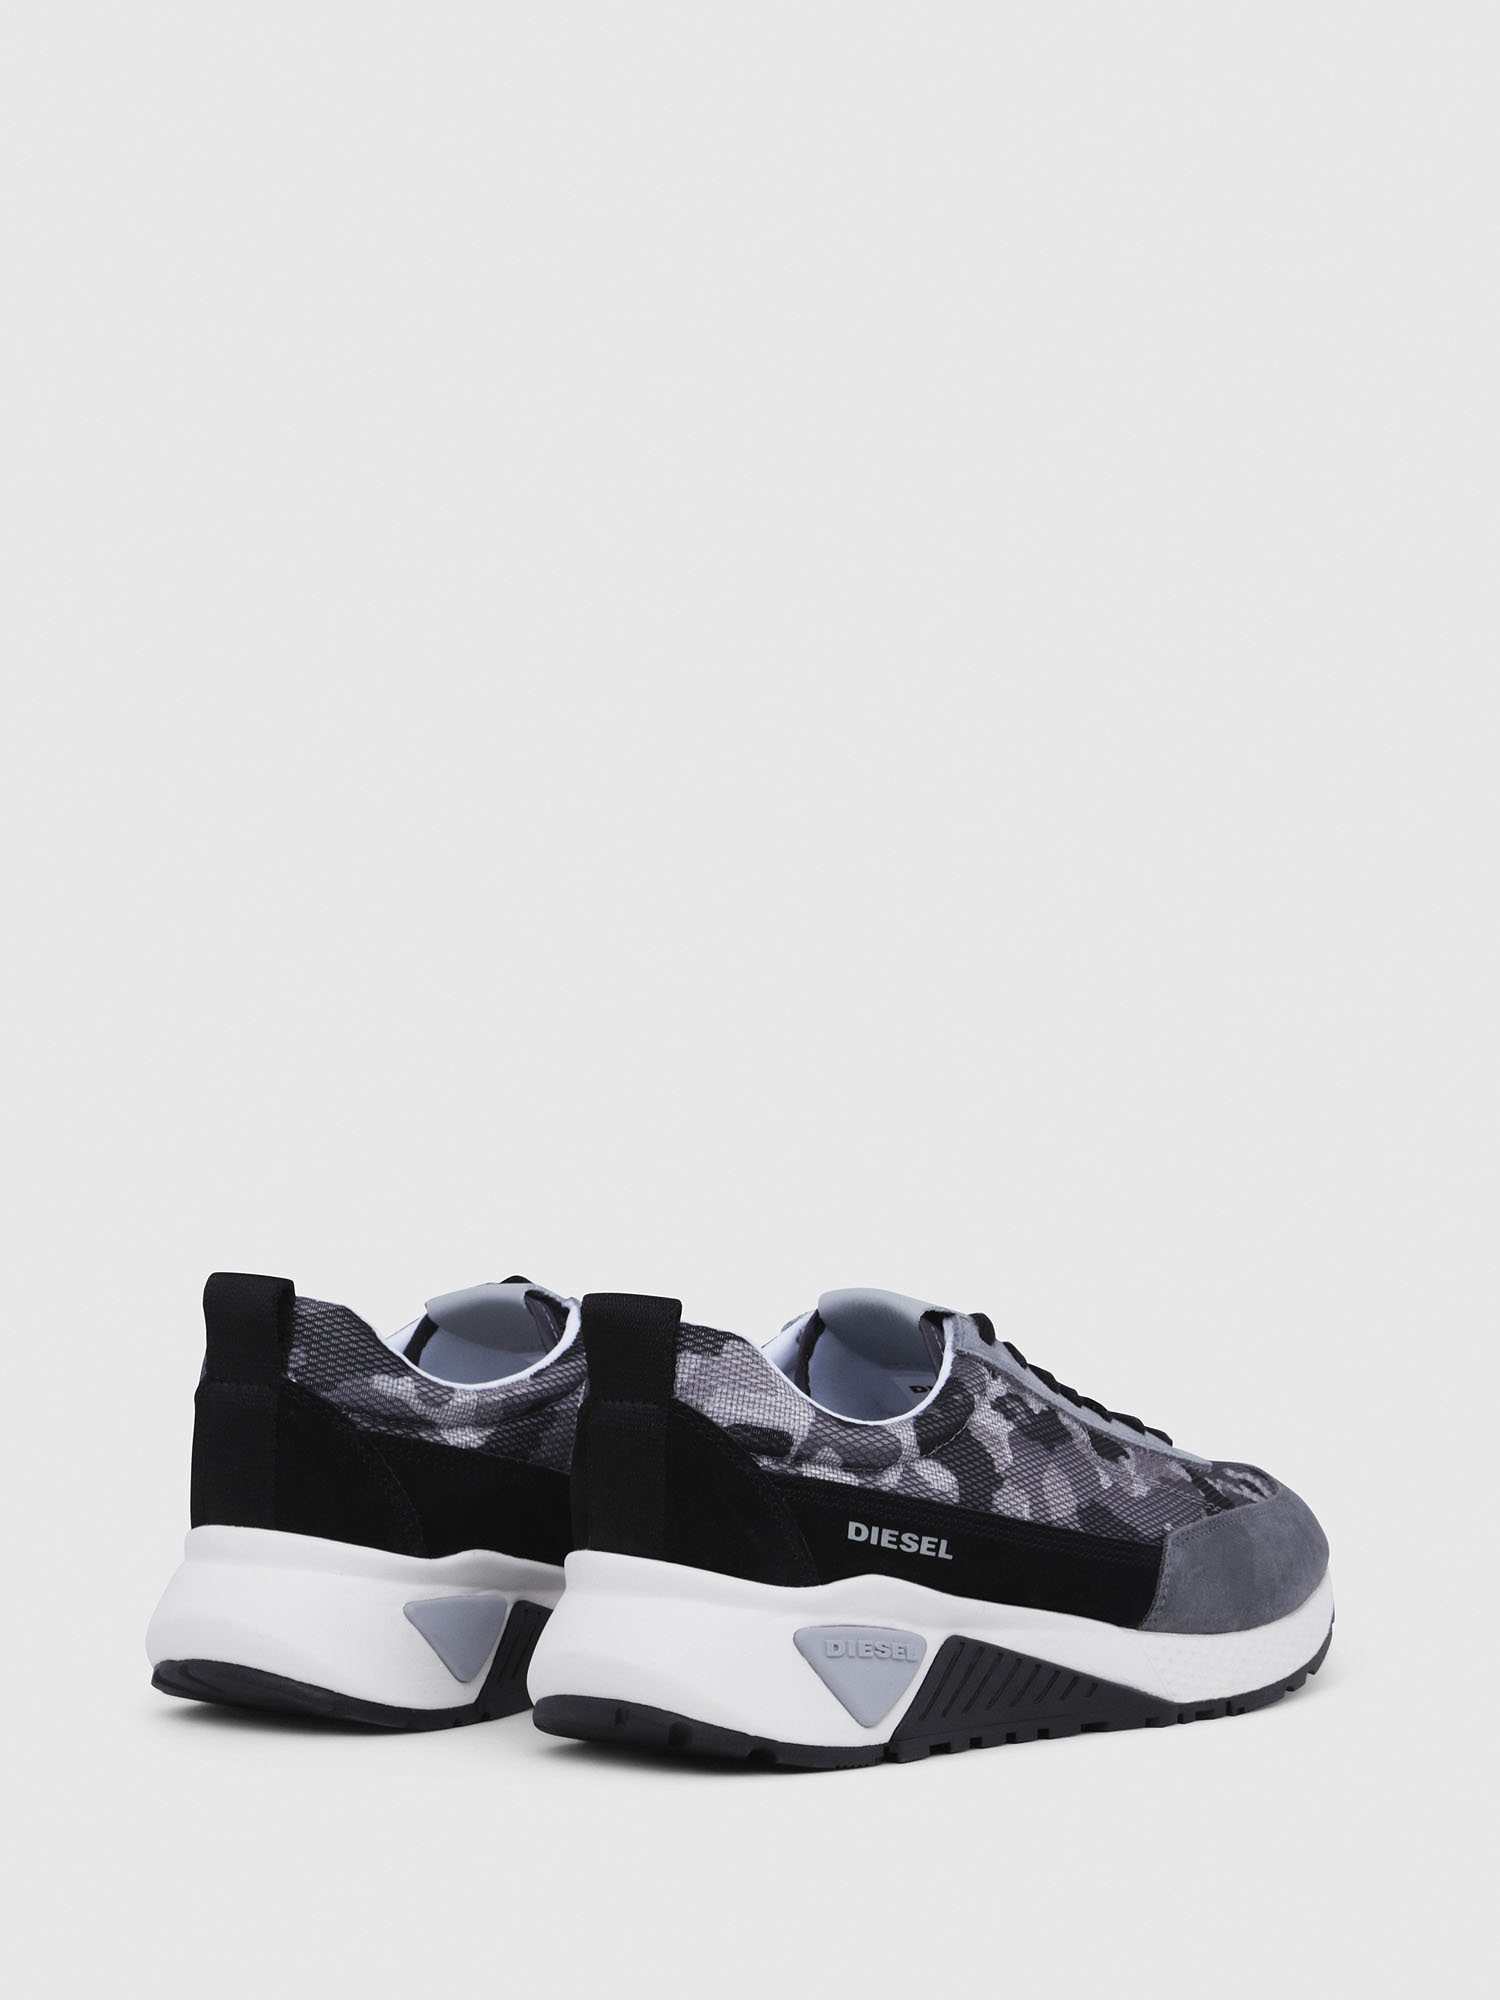 Diesel - S-KB LOW LACE,  - Sneakers - Image 3